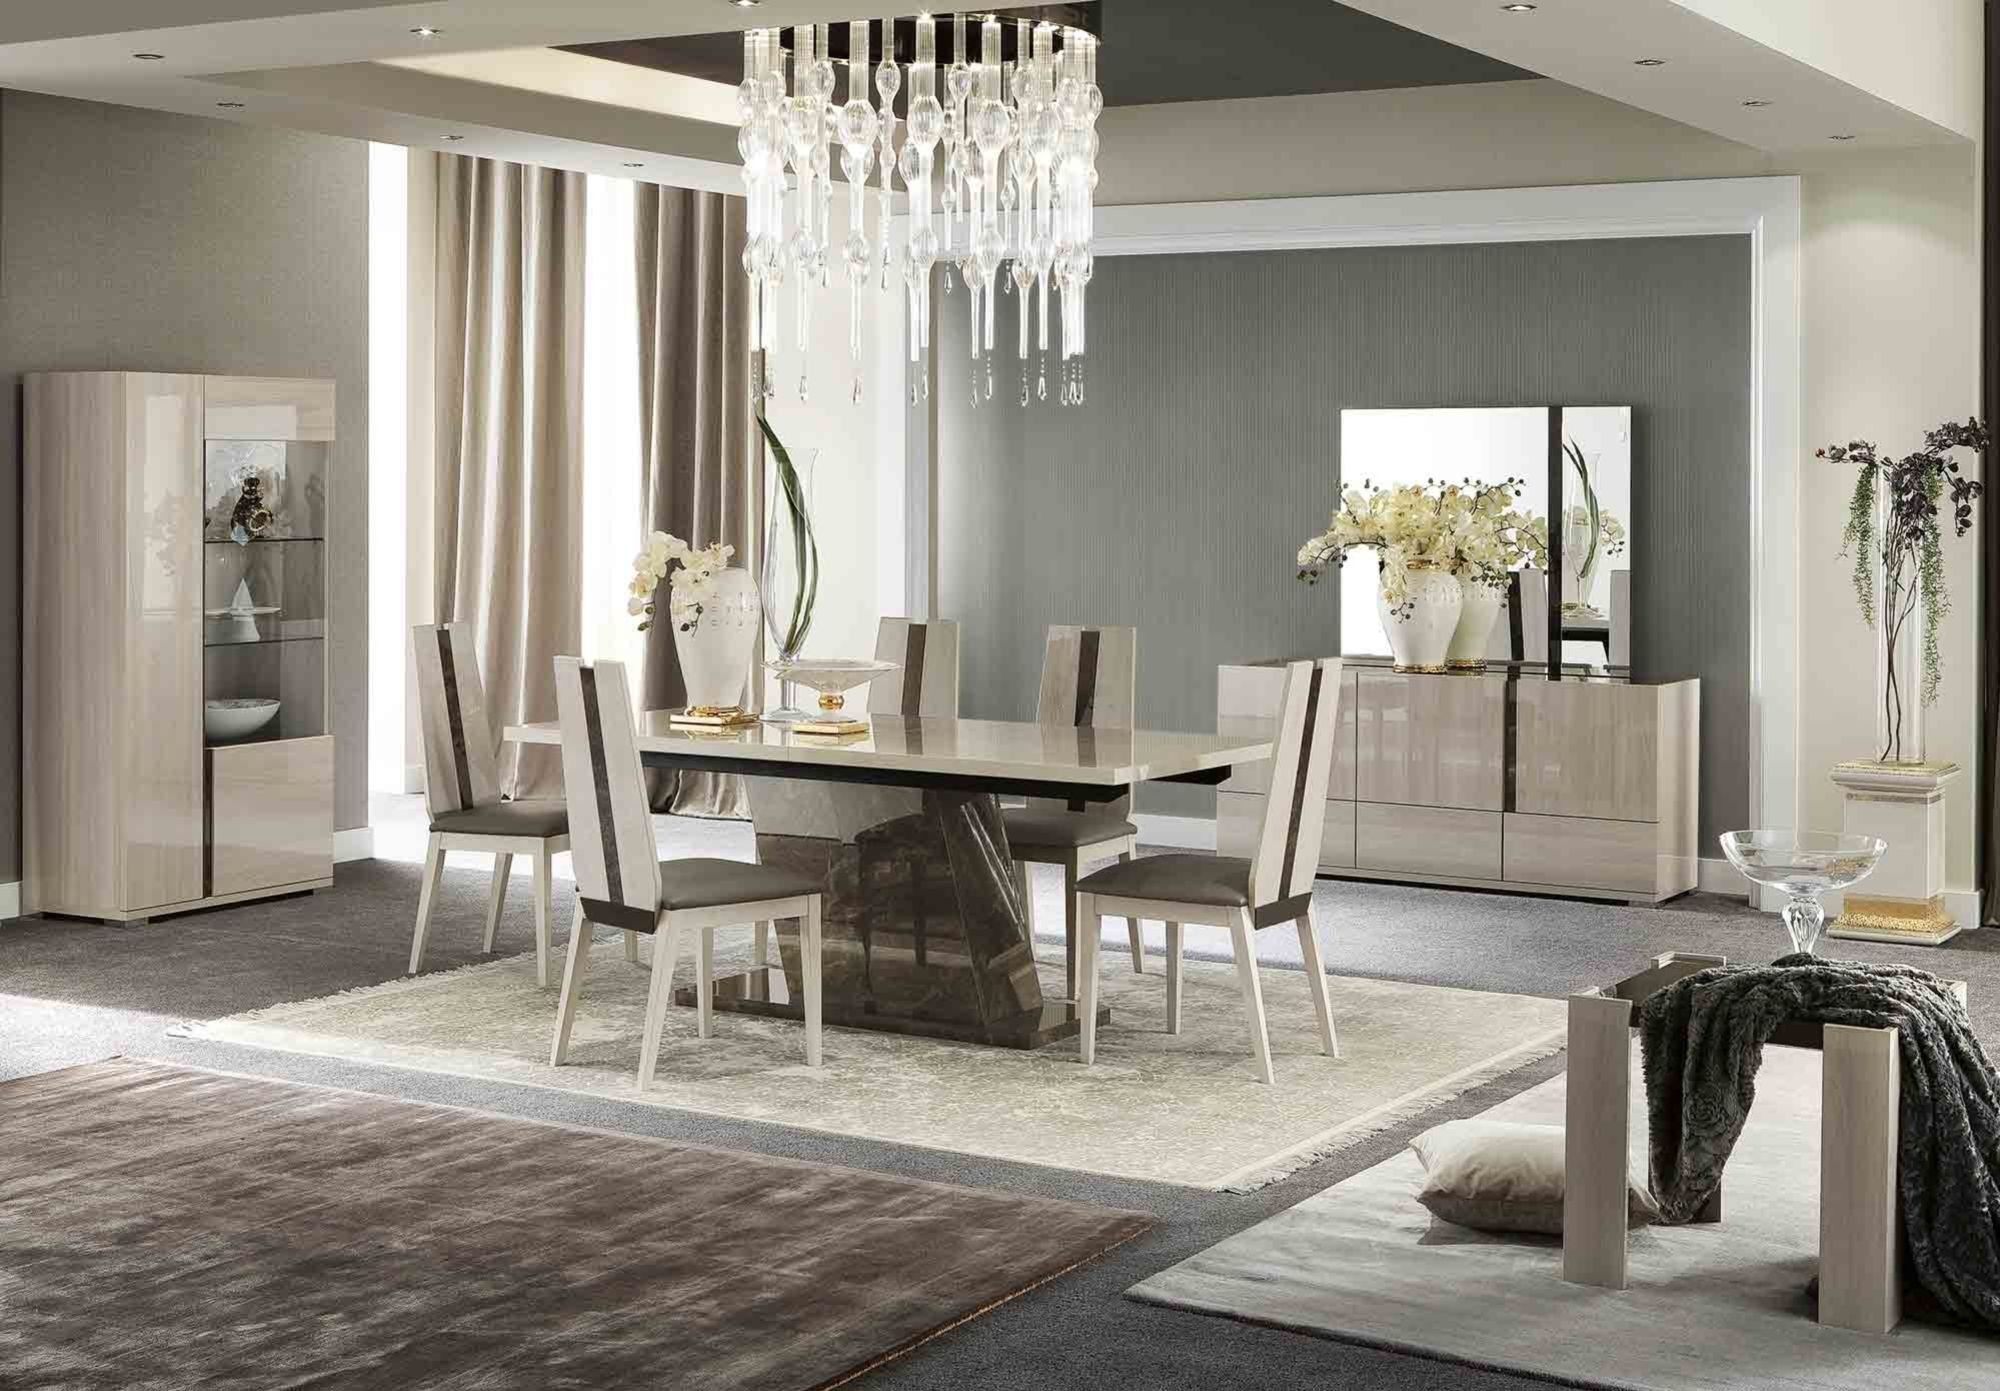 Extending Dining Table Andorra Dining Furniture From Furniture  # Teodora Muebles